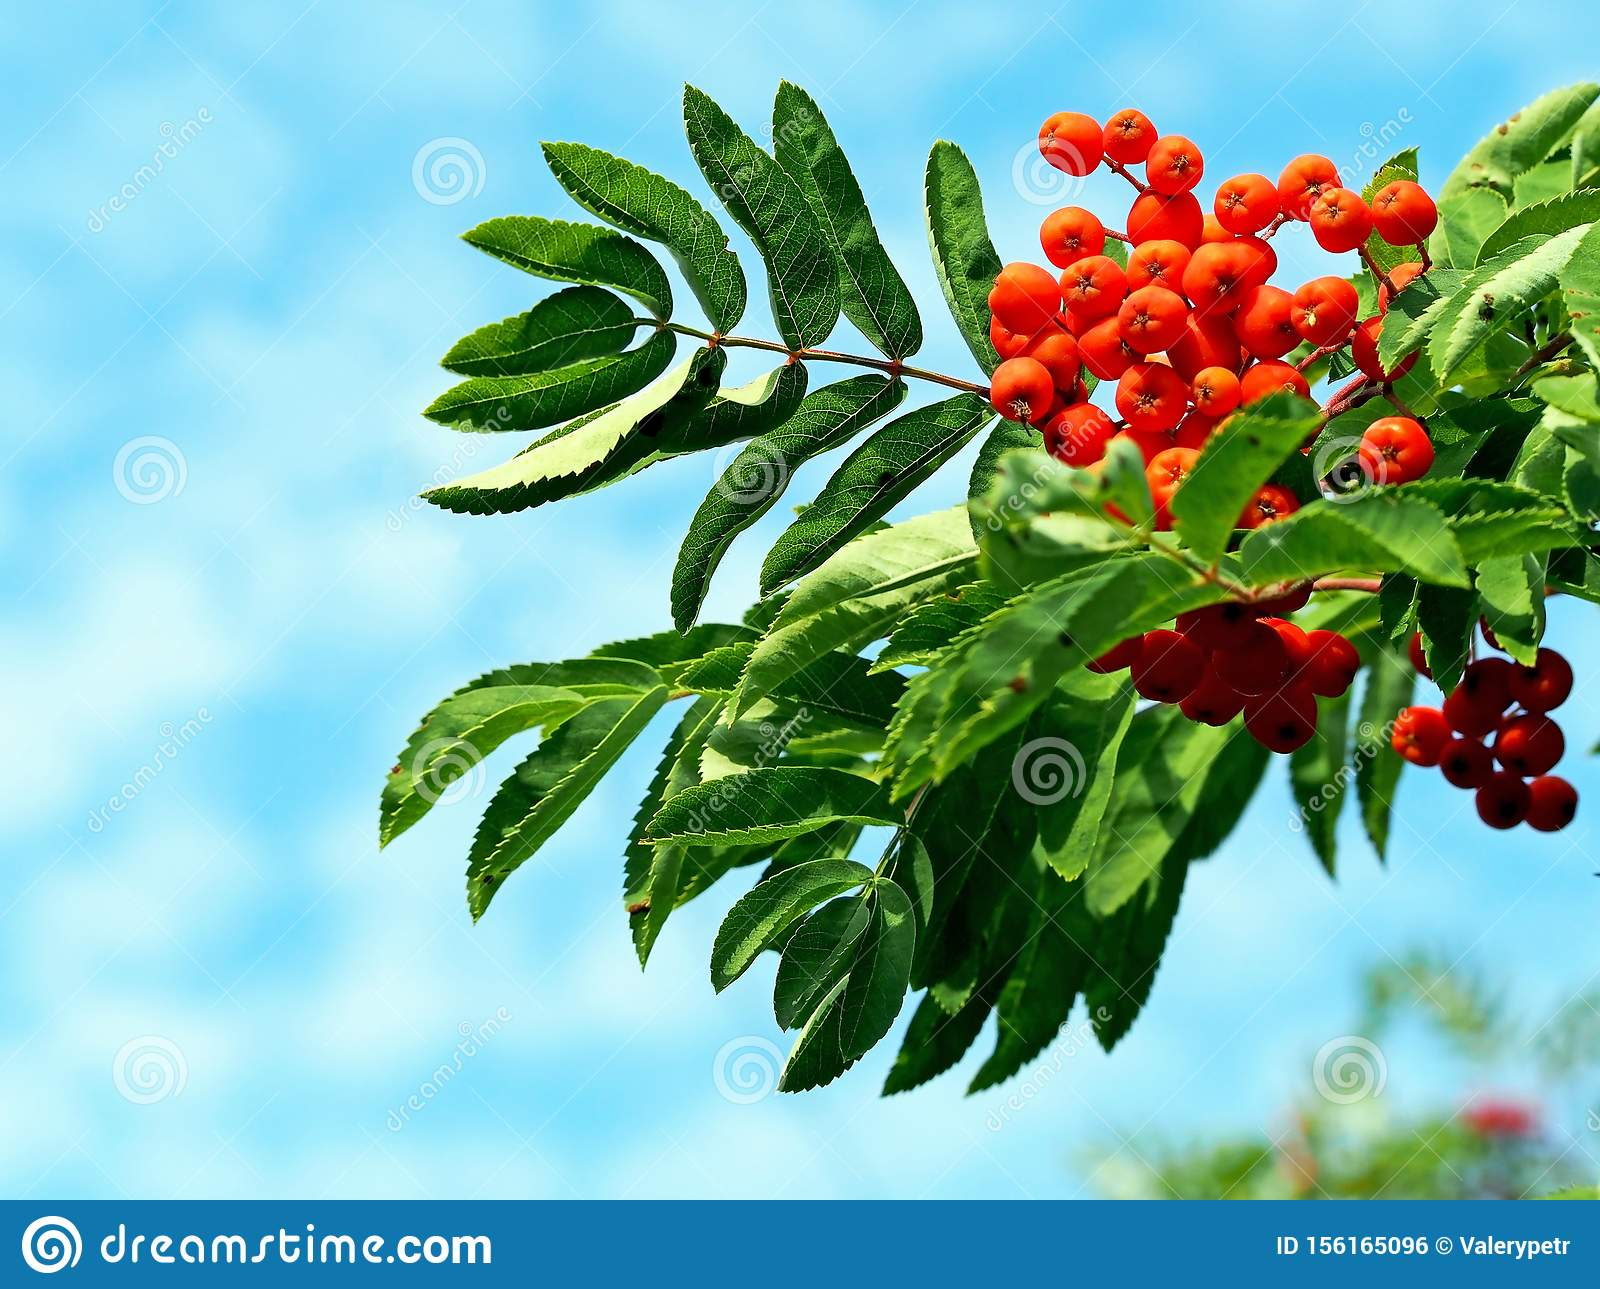 Orange ripe mountain ash with green leaves against the blue sky